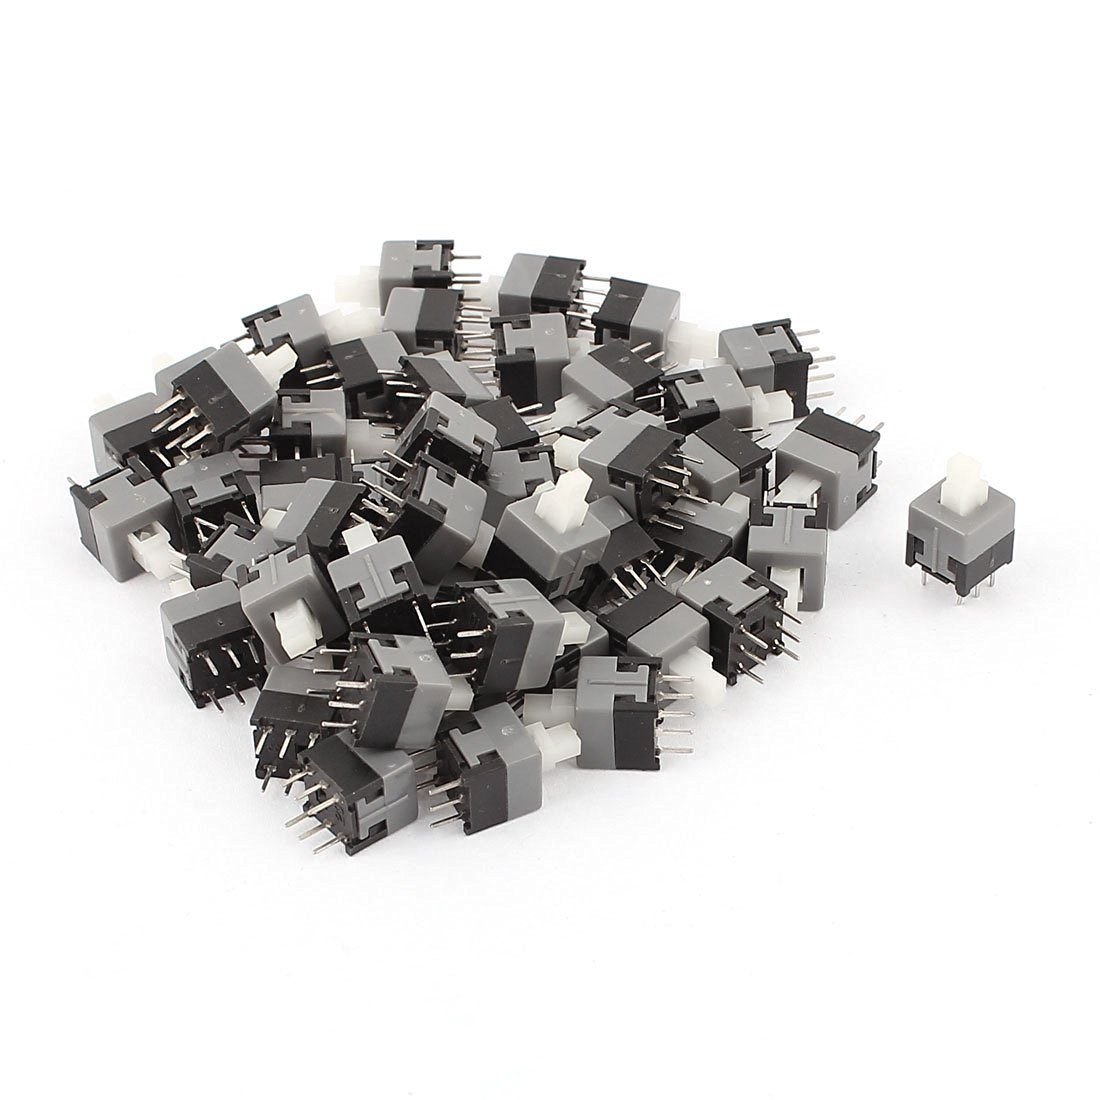 Cheap 8 Pin Dpdt Switch, find 8 Pin Dpdt Switch deals on line at ...